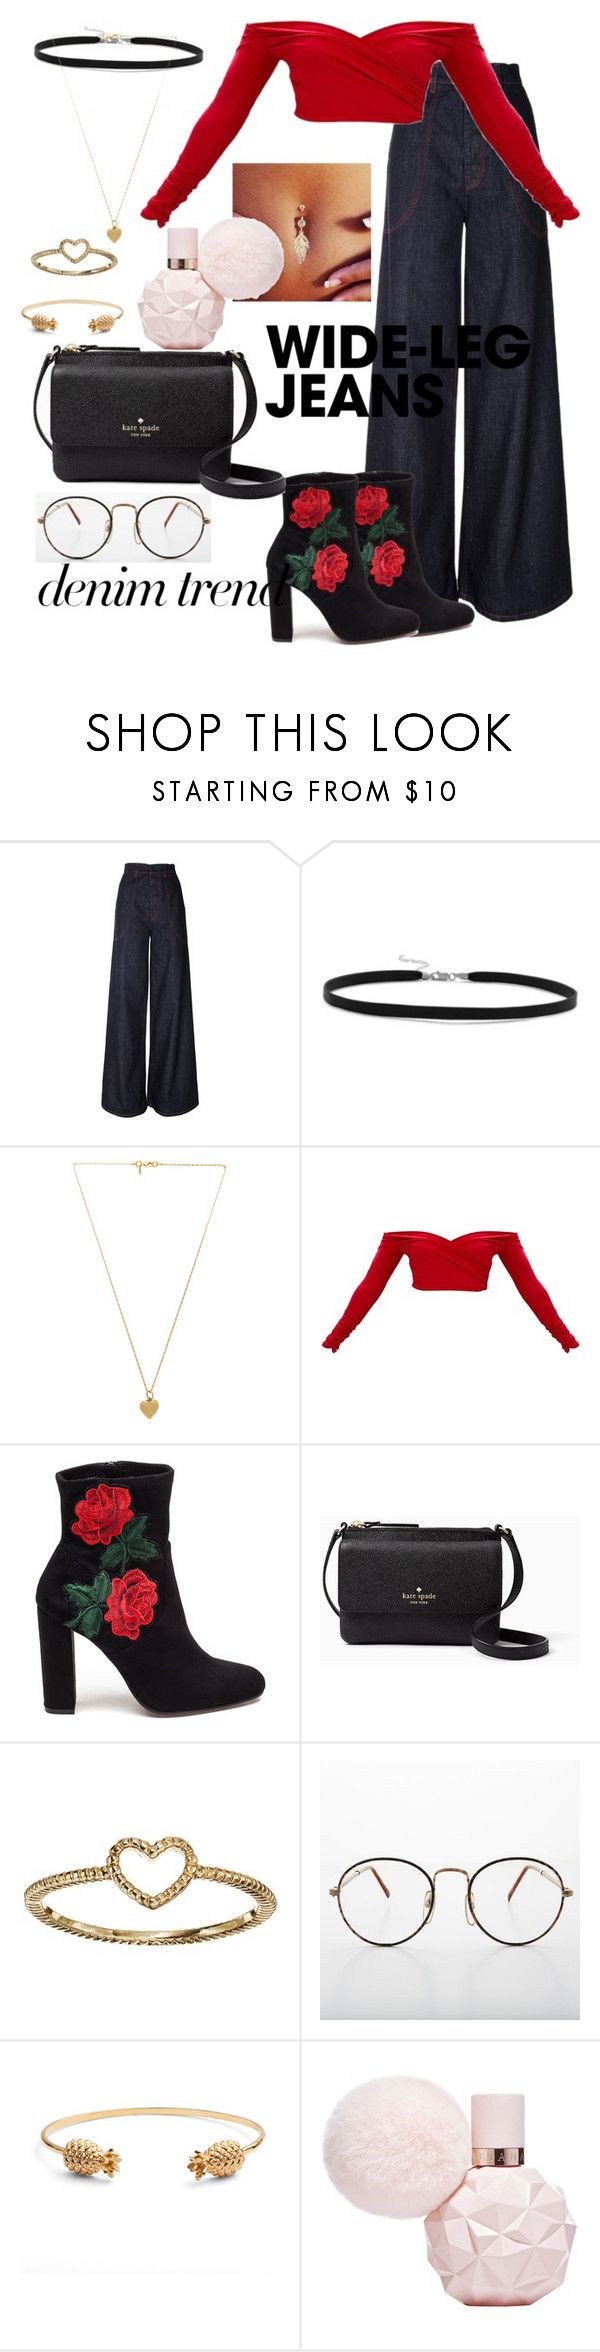 """""""Wide-Leg Jeans and Roses"""" by tyler-brea ❤ liked on Polyvore featuring Marni, BillyTheTree, Vanessa Mooney, Steve Madden, Kate Spade, LC Lauren Conrad, Rachel Jackson, denimtrend and widelegjeans"""